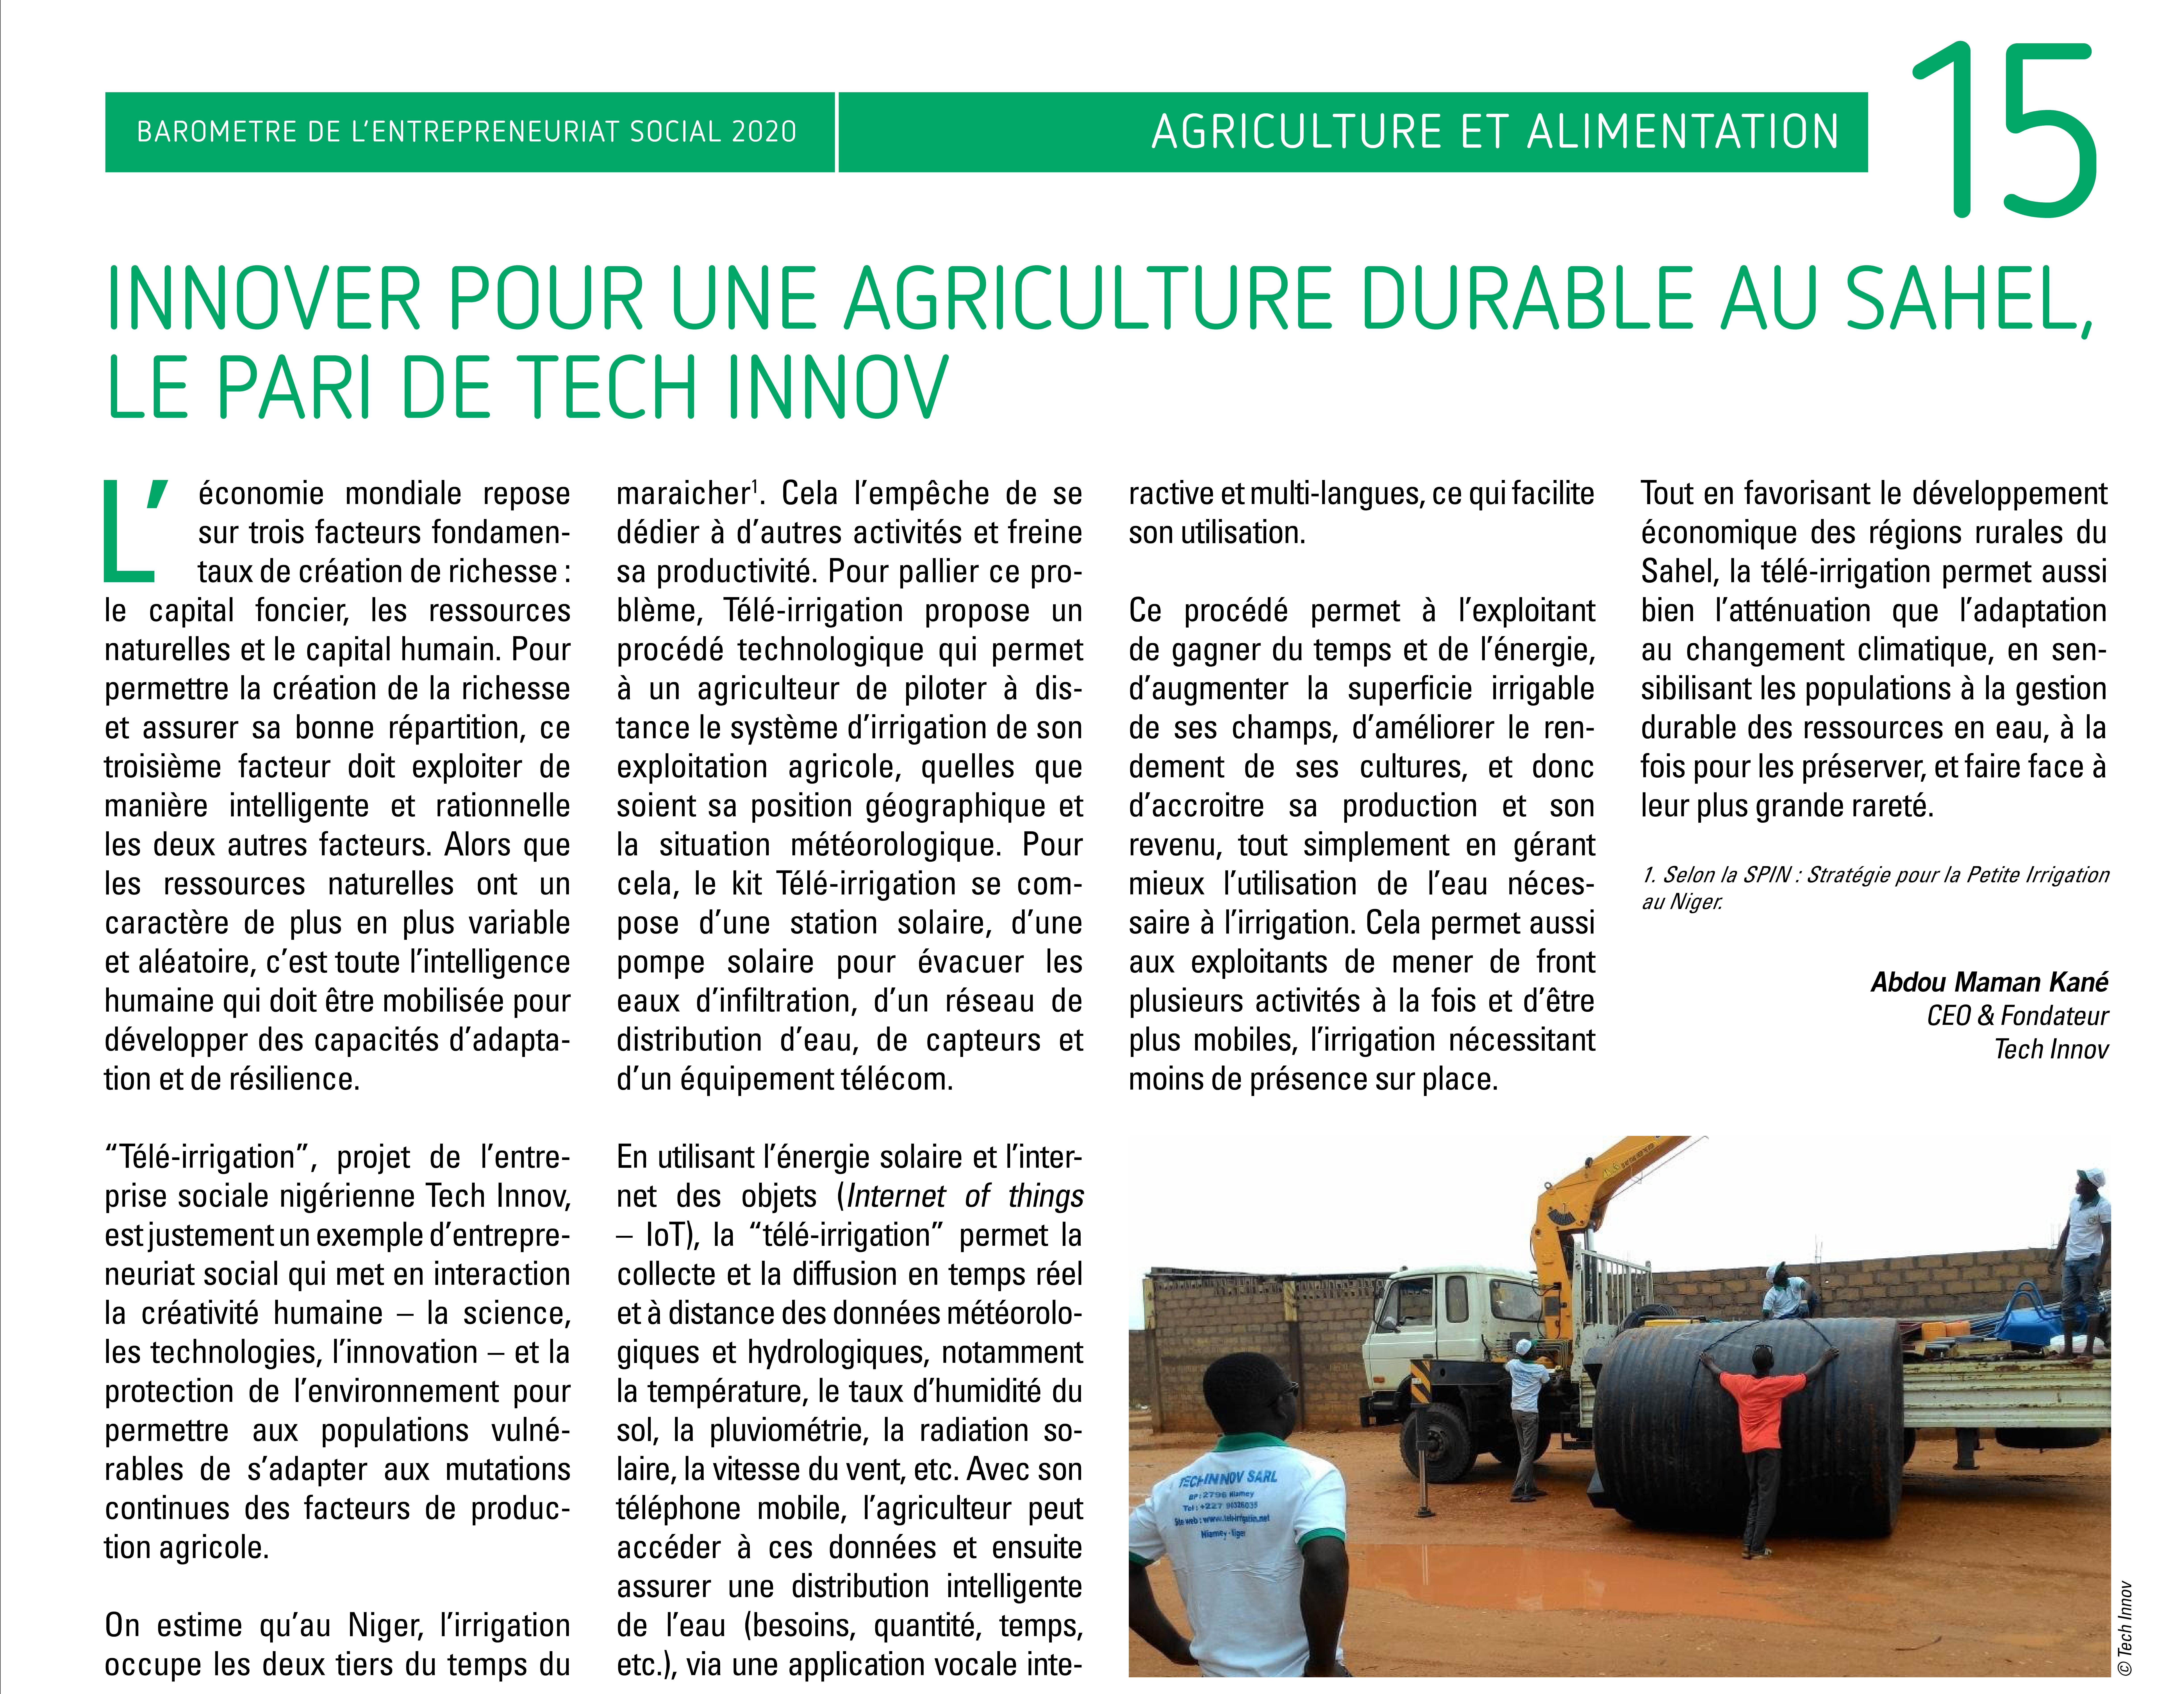 Tech Innov's gamble: innovating for sustainable agriculture in the Sahel